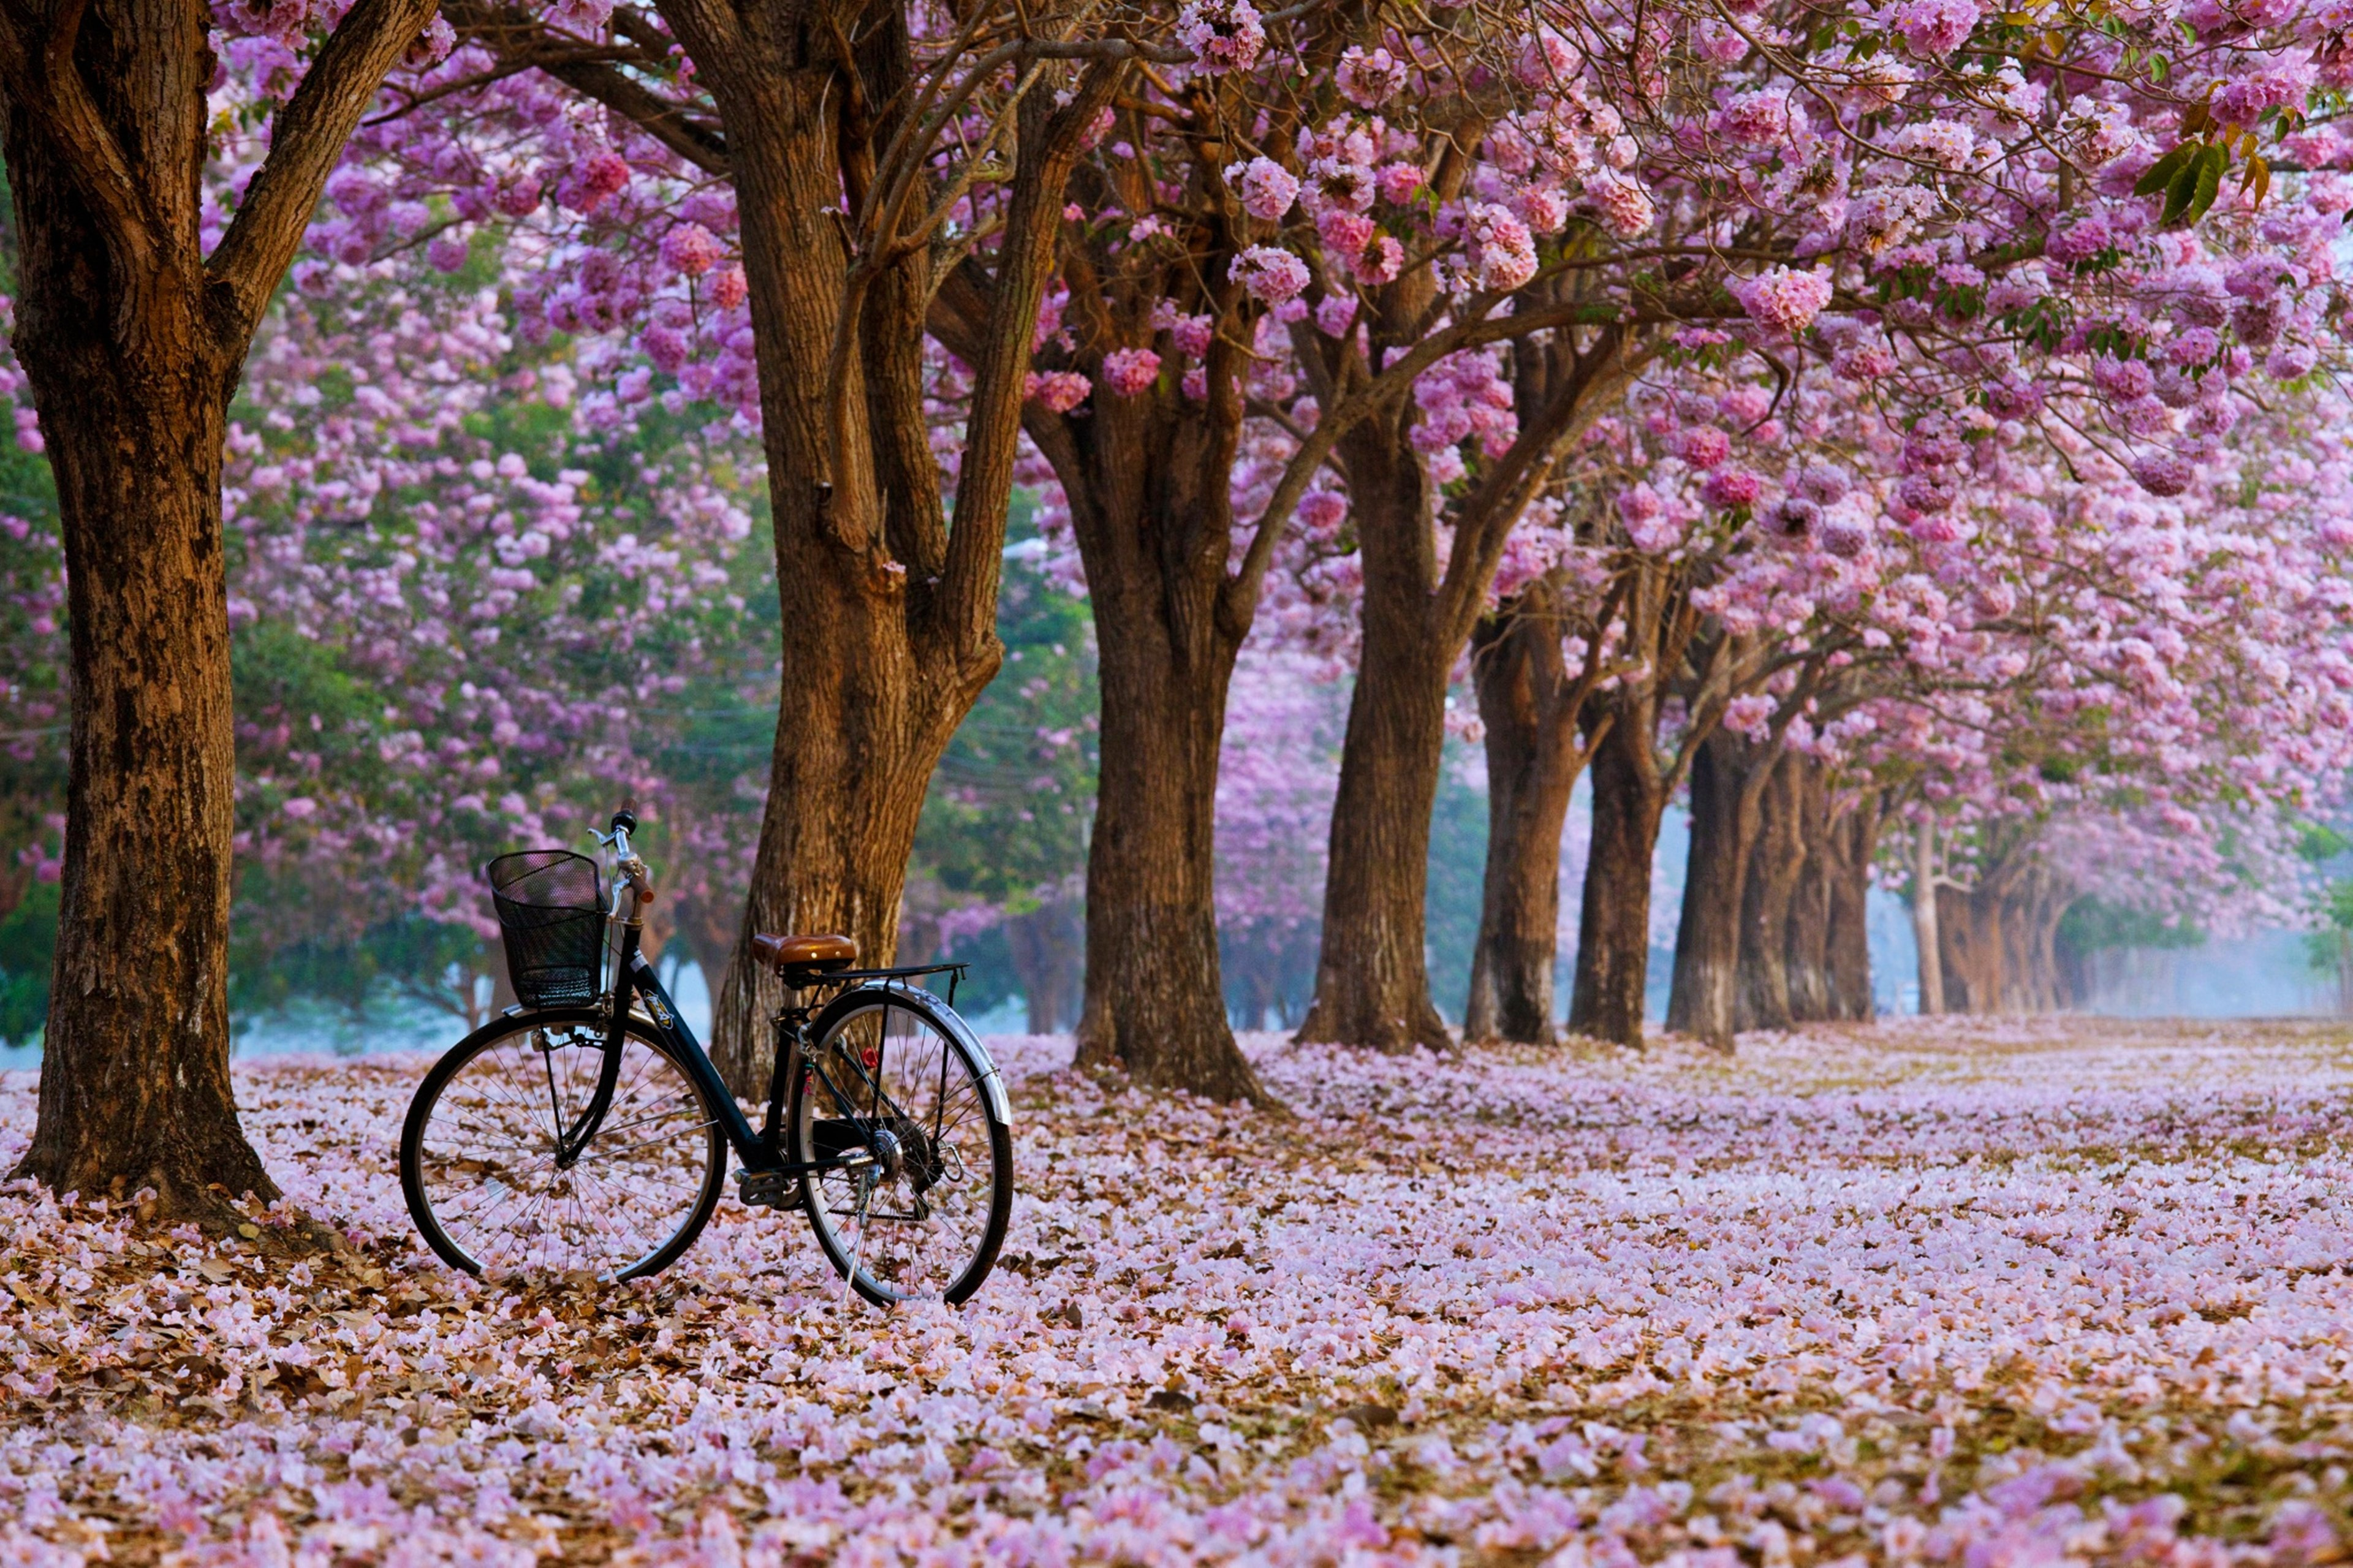 bicycles with flowers wallpaper - photo #23